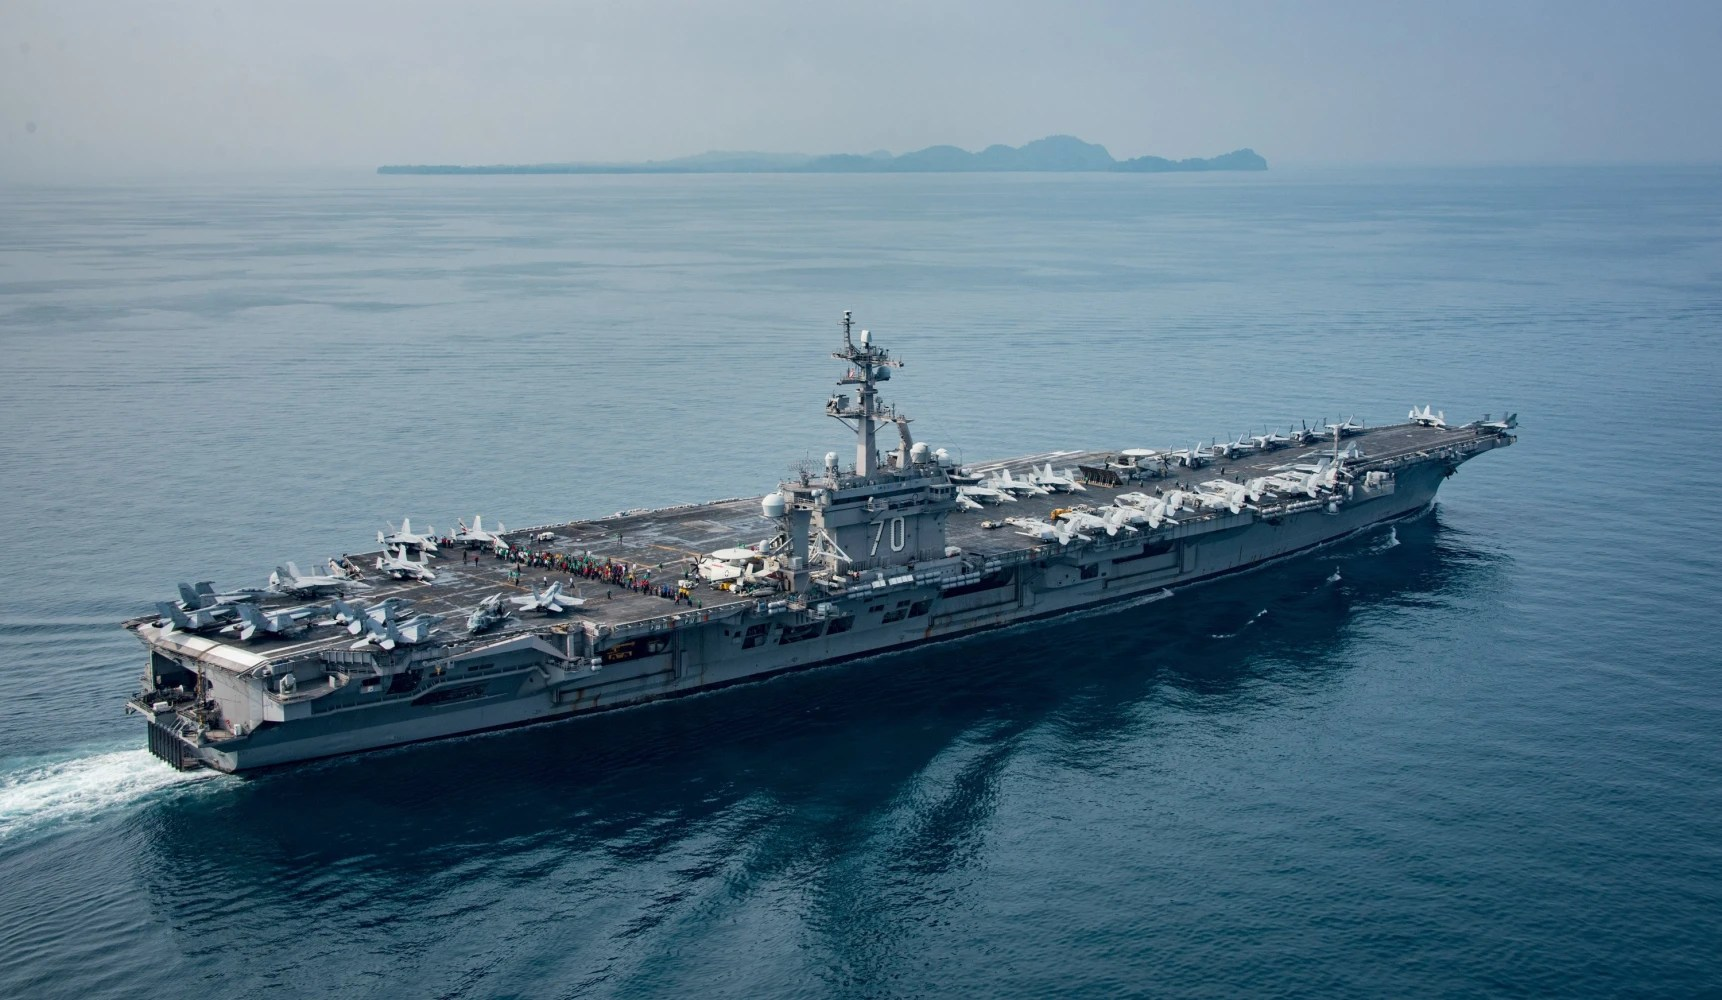 North Korea Threatens To Sink US Carrier; China Urges Restraint